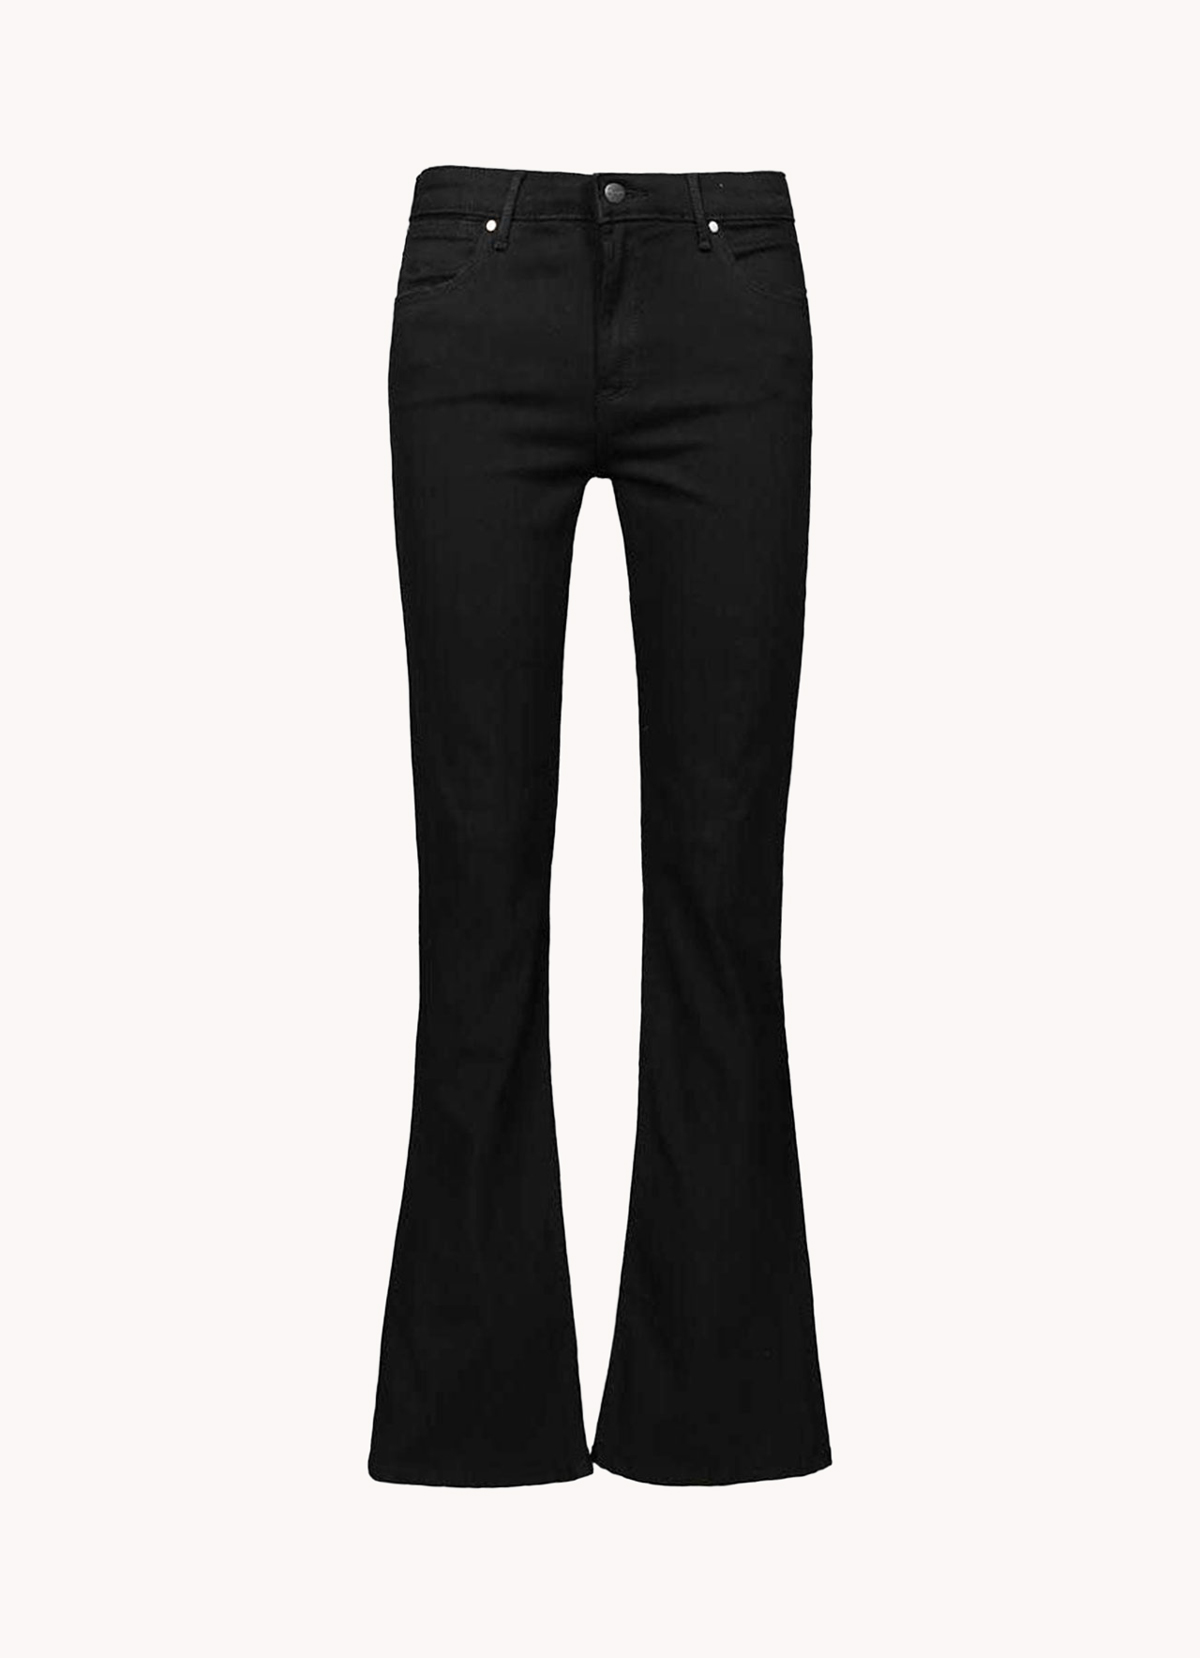 Flare jeans negros